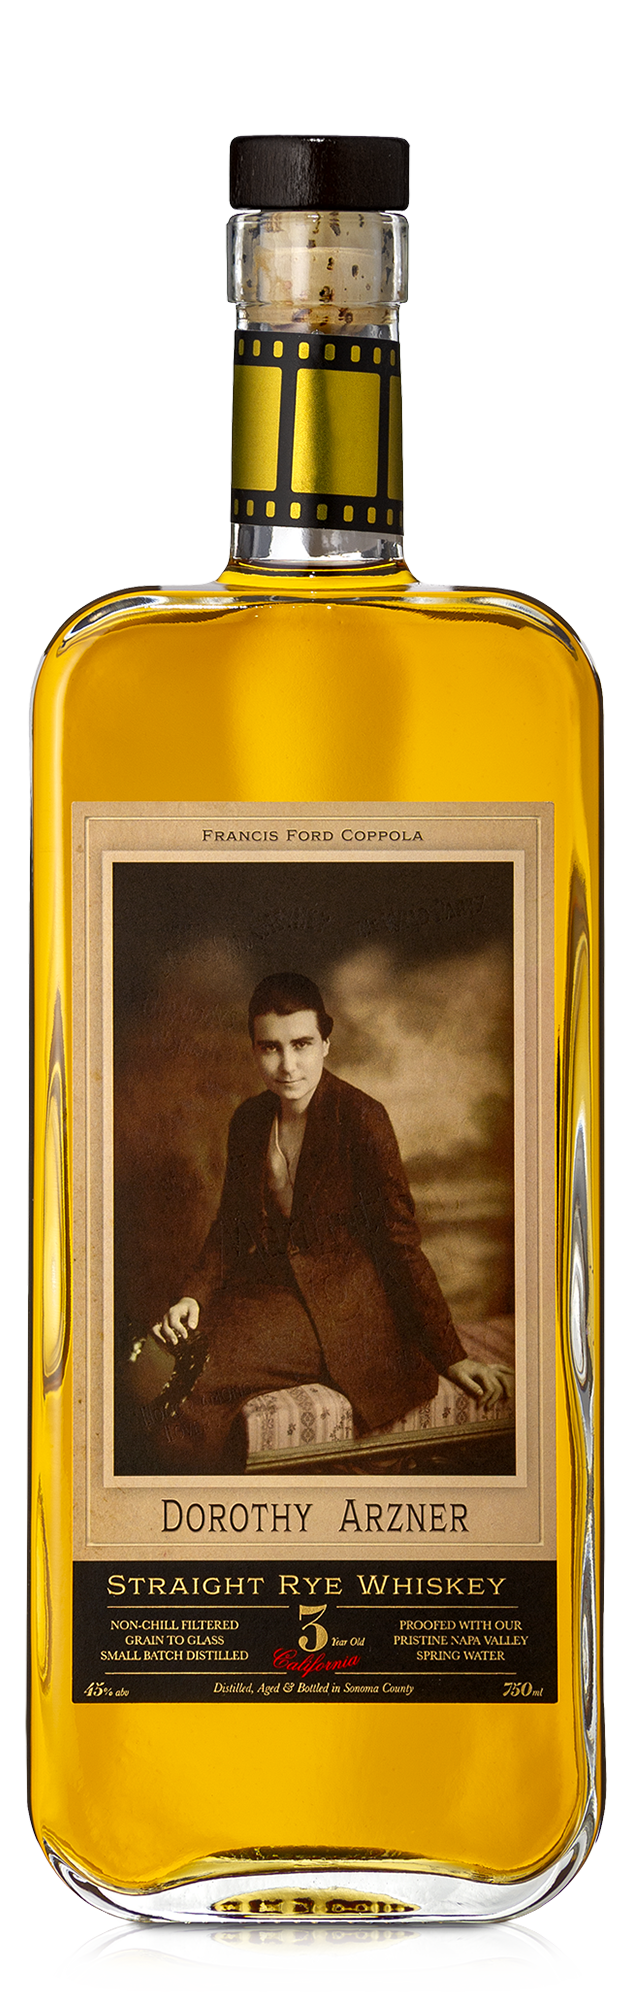 A bottle of Dorothy Arzner Rye Whiskey.